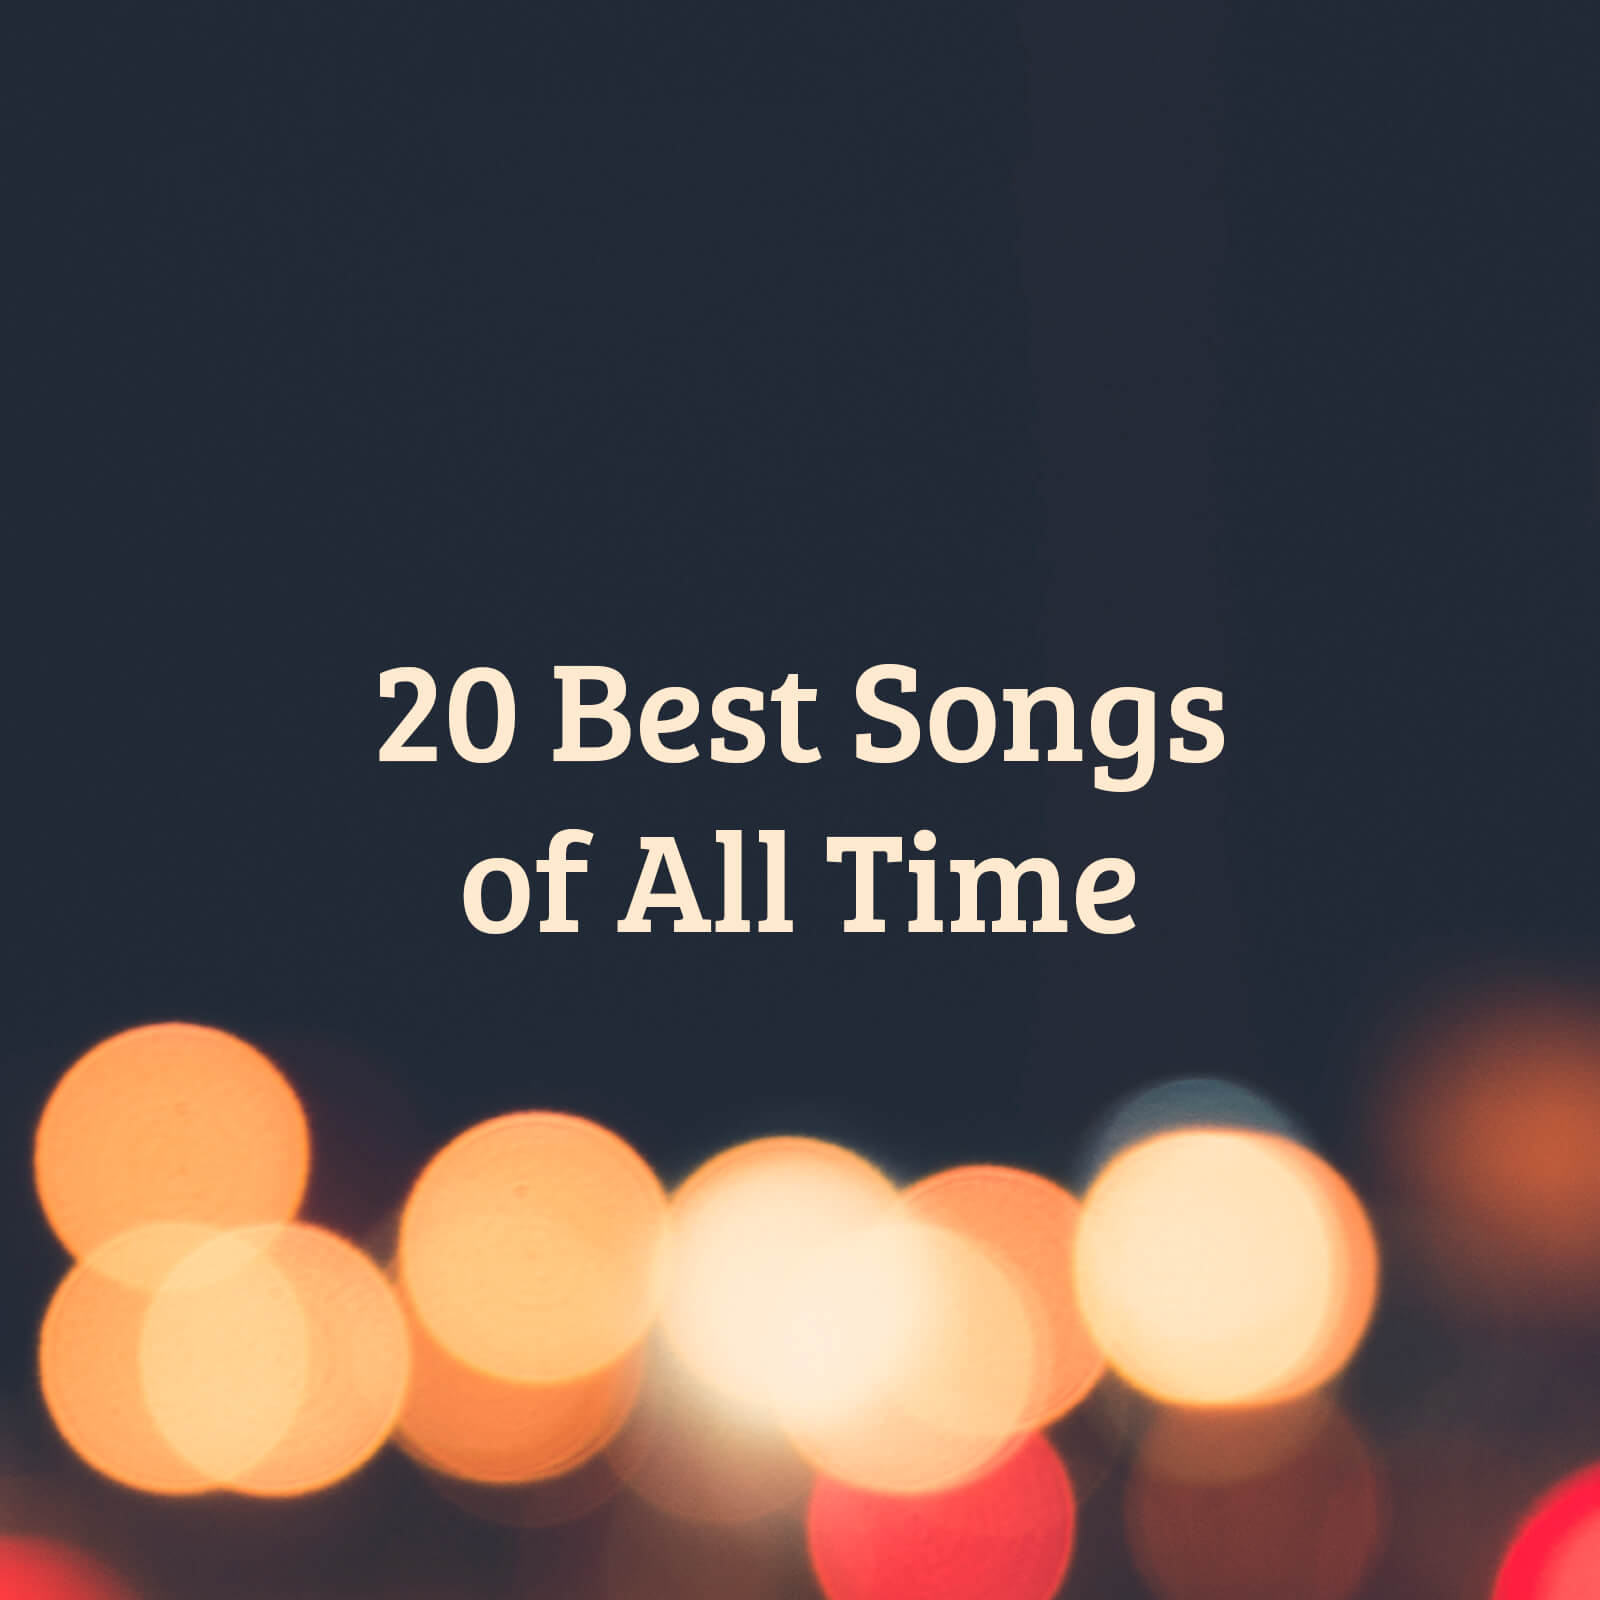 20 Best Songs of All Time Cover